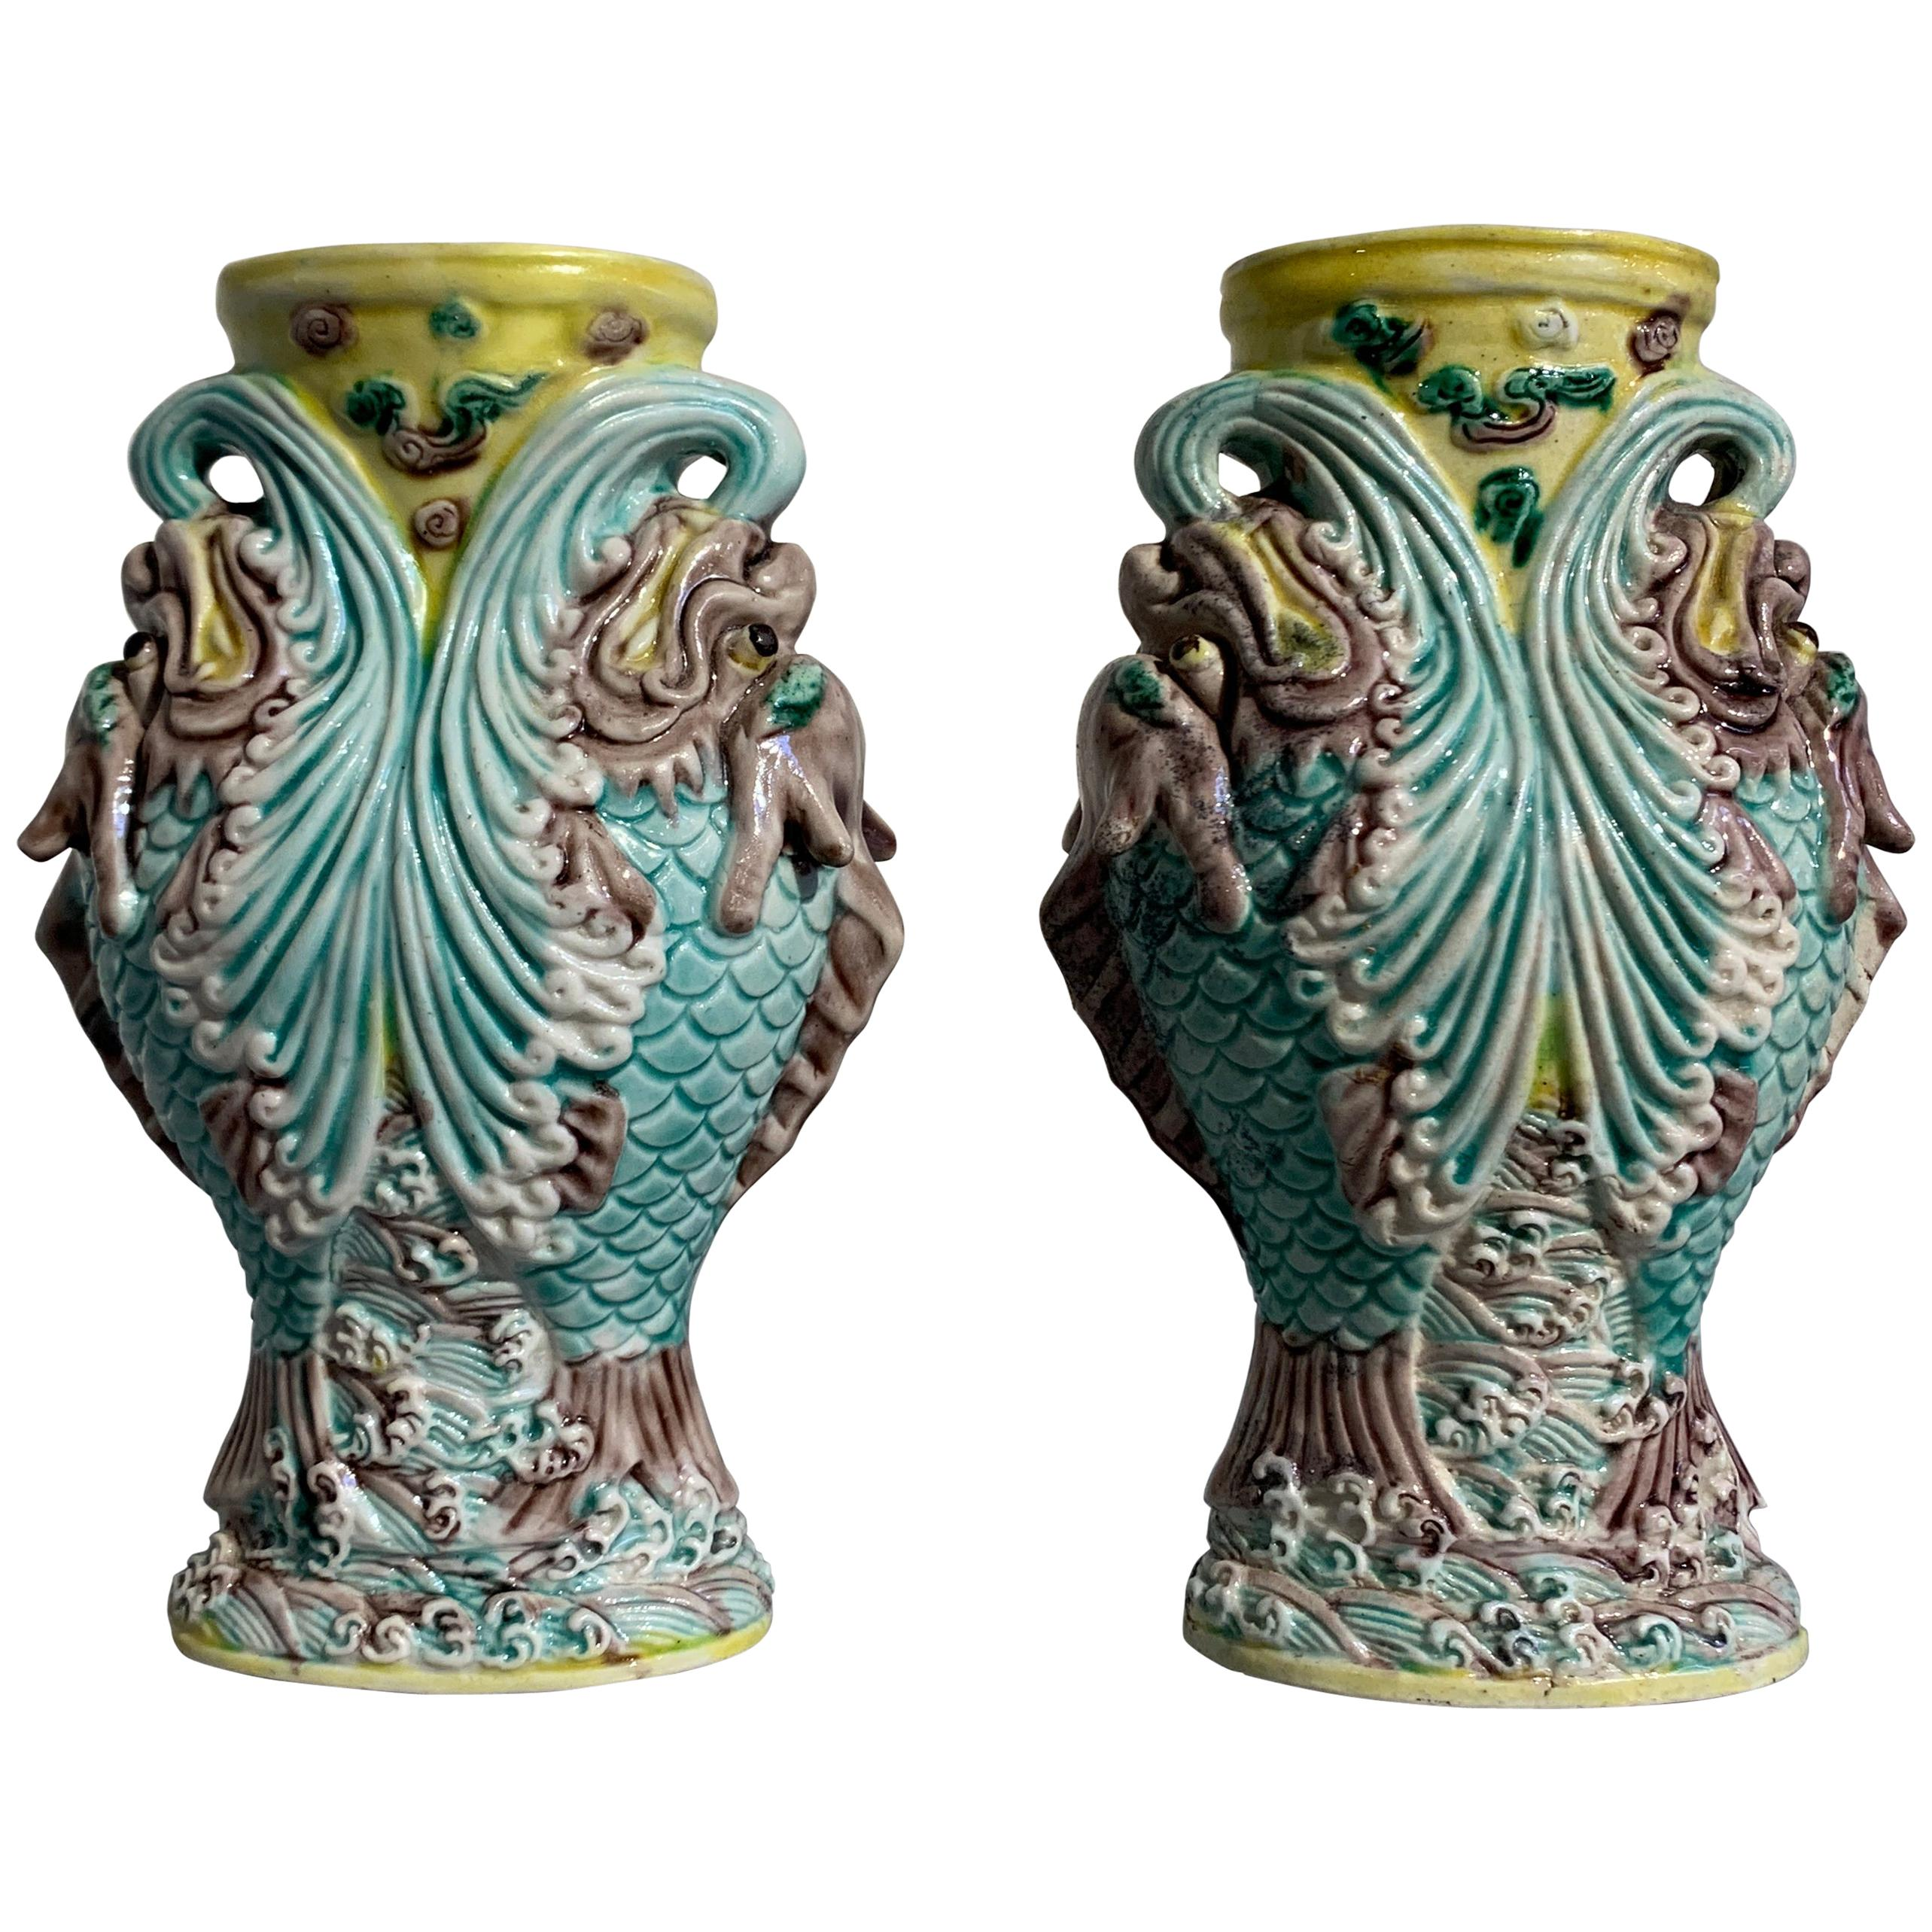 Chinese Dragon Fish Glazed Porcelain Vase Pair, Qing Dynasty, 19th-20th Century